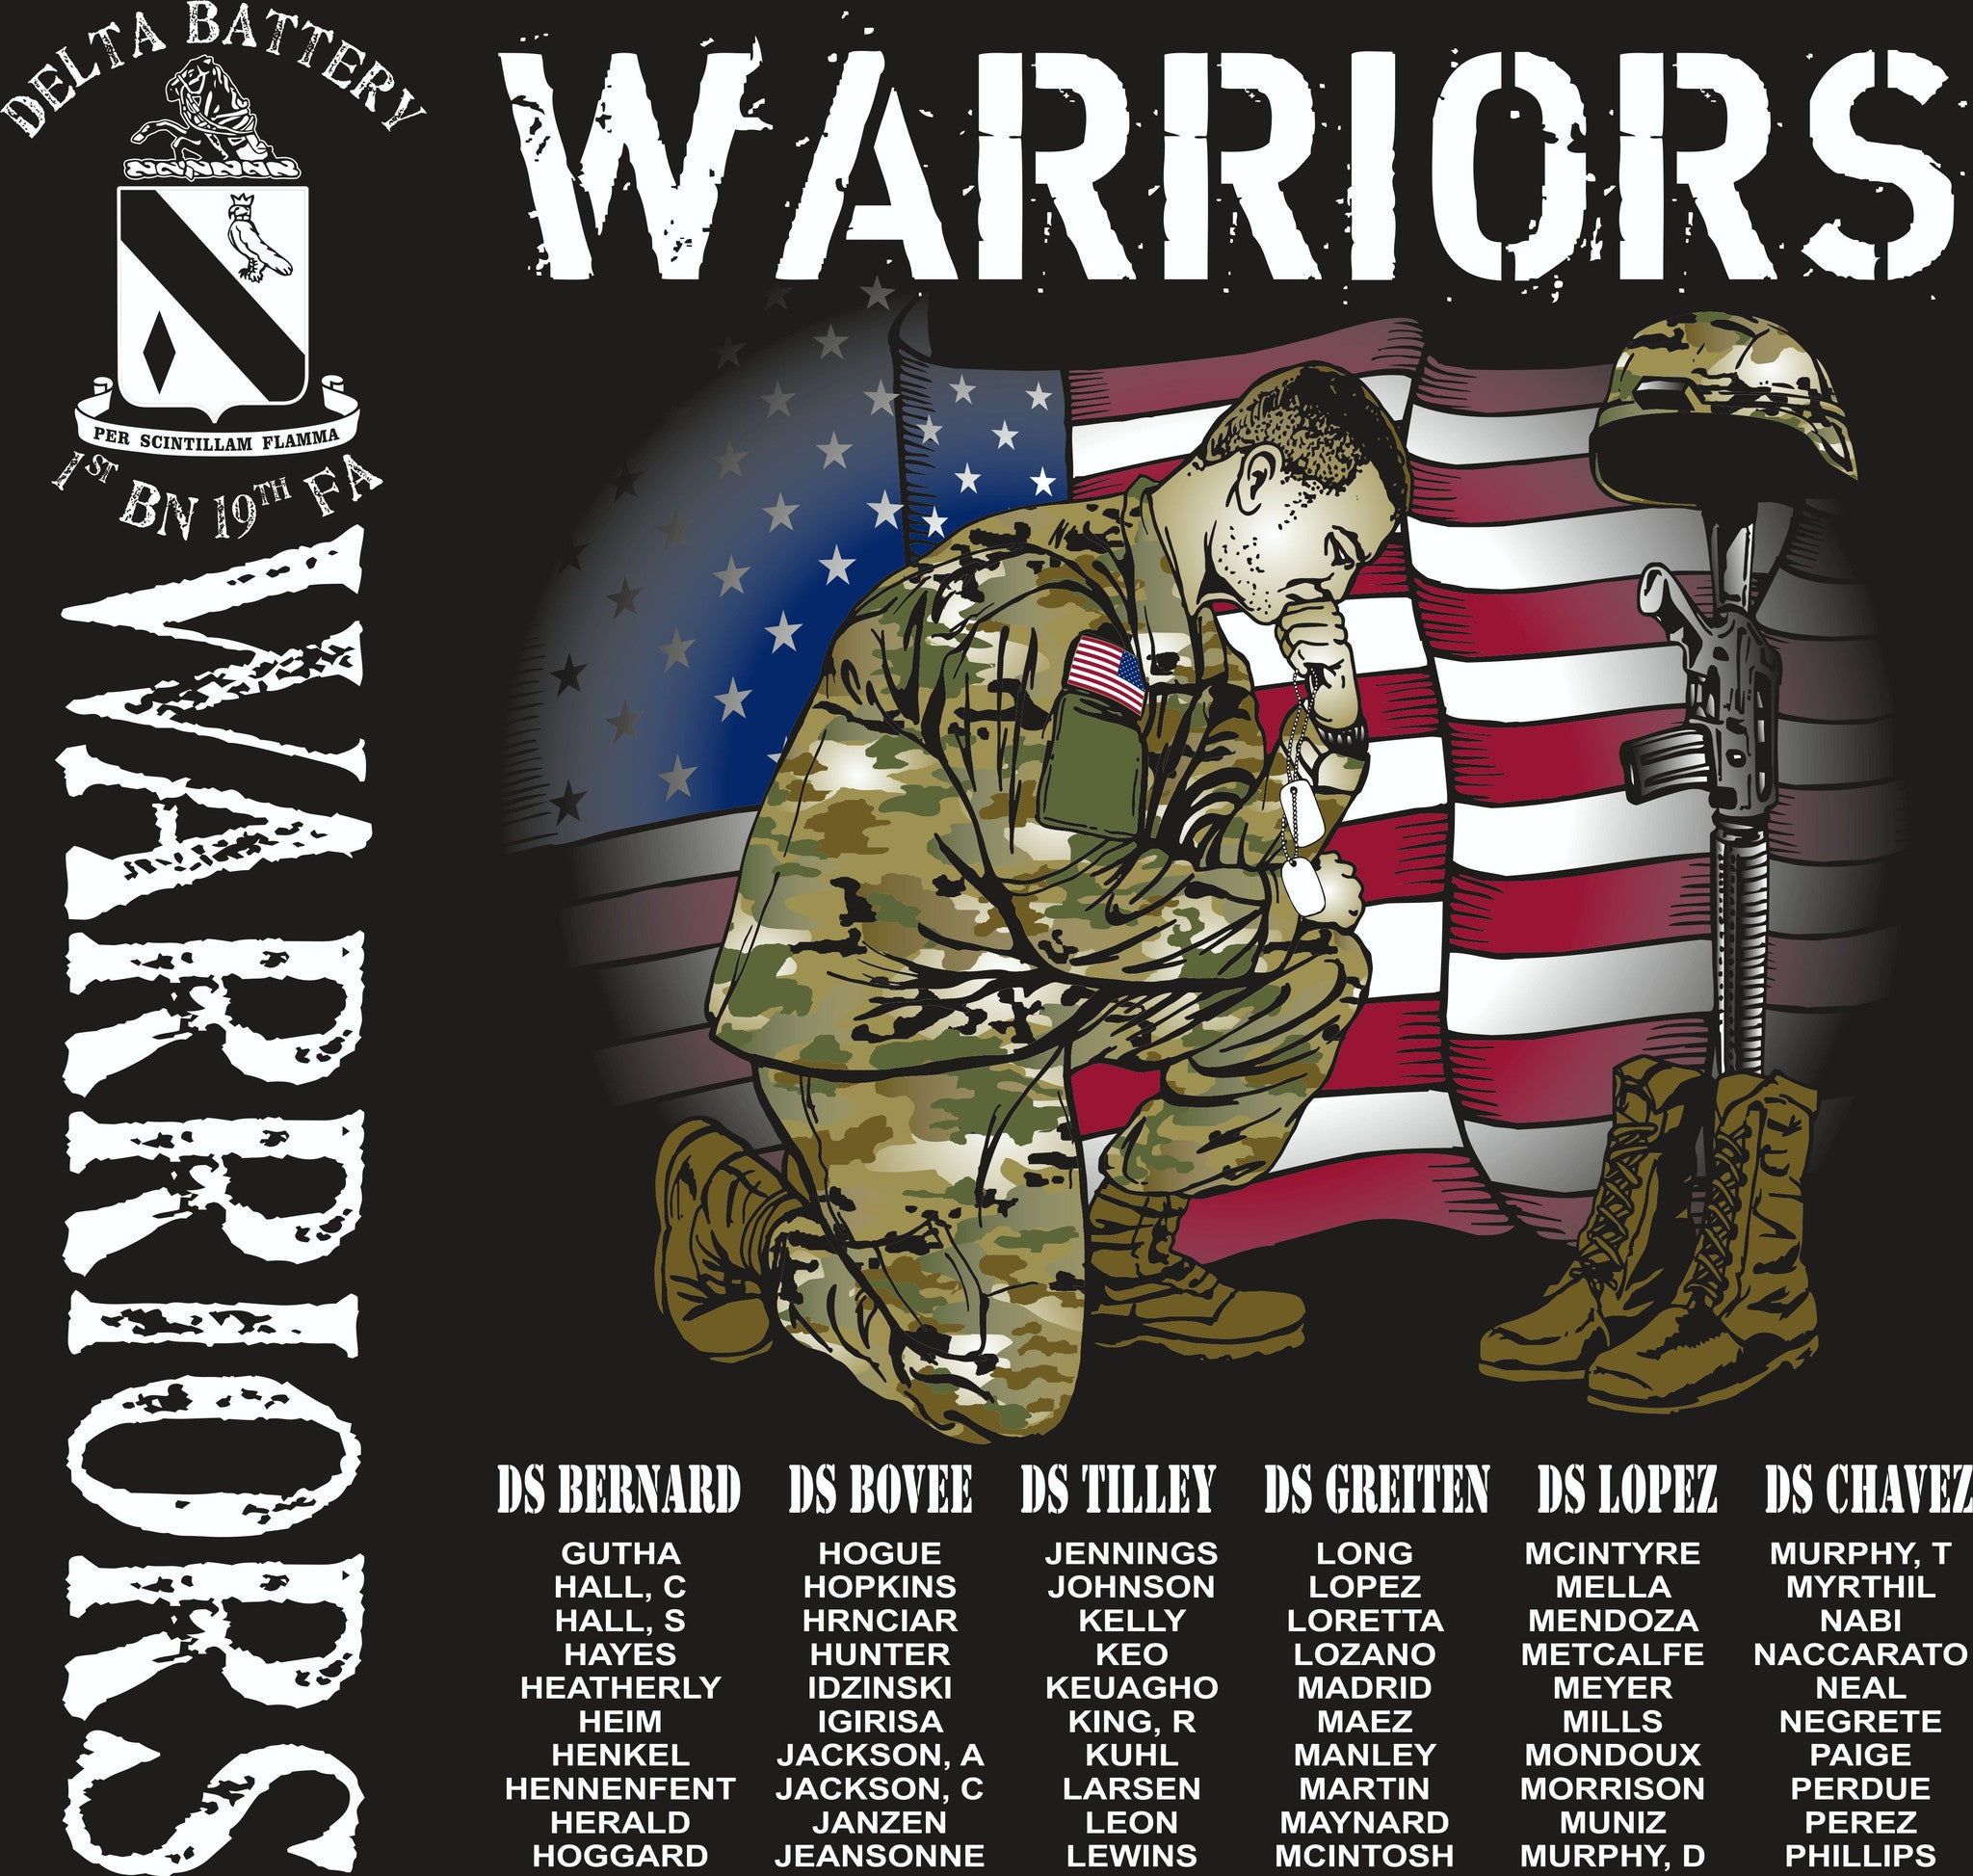 PLATOON SHIRTS (2nd generation print) DELTA 1st 19th WARRIORS JAN 2017